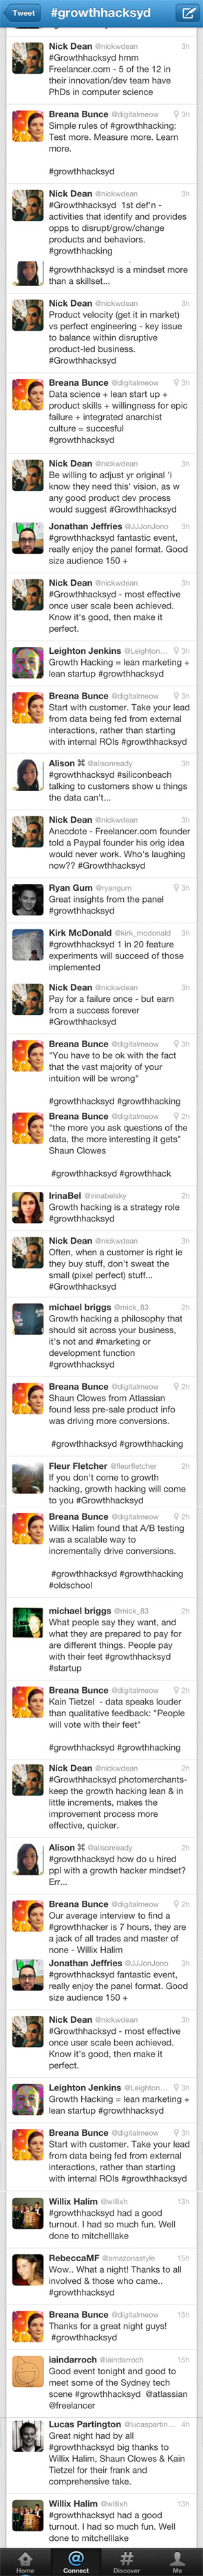 Notes-on growth hacking from Hack-to-the-Future-2013